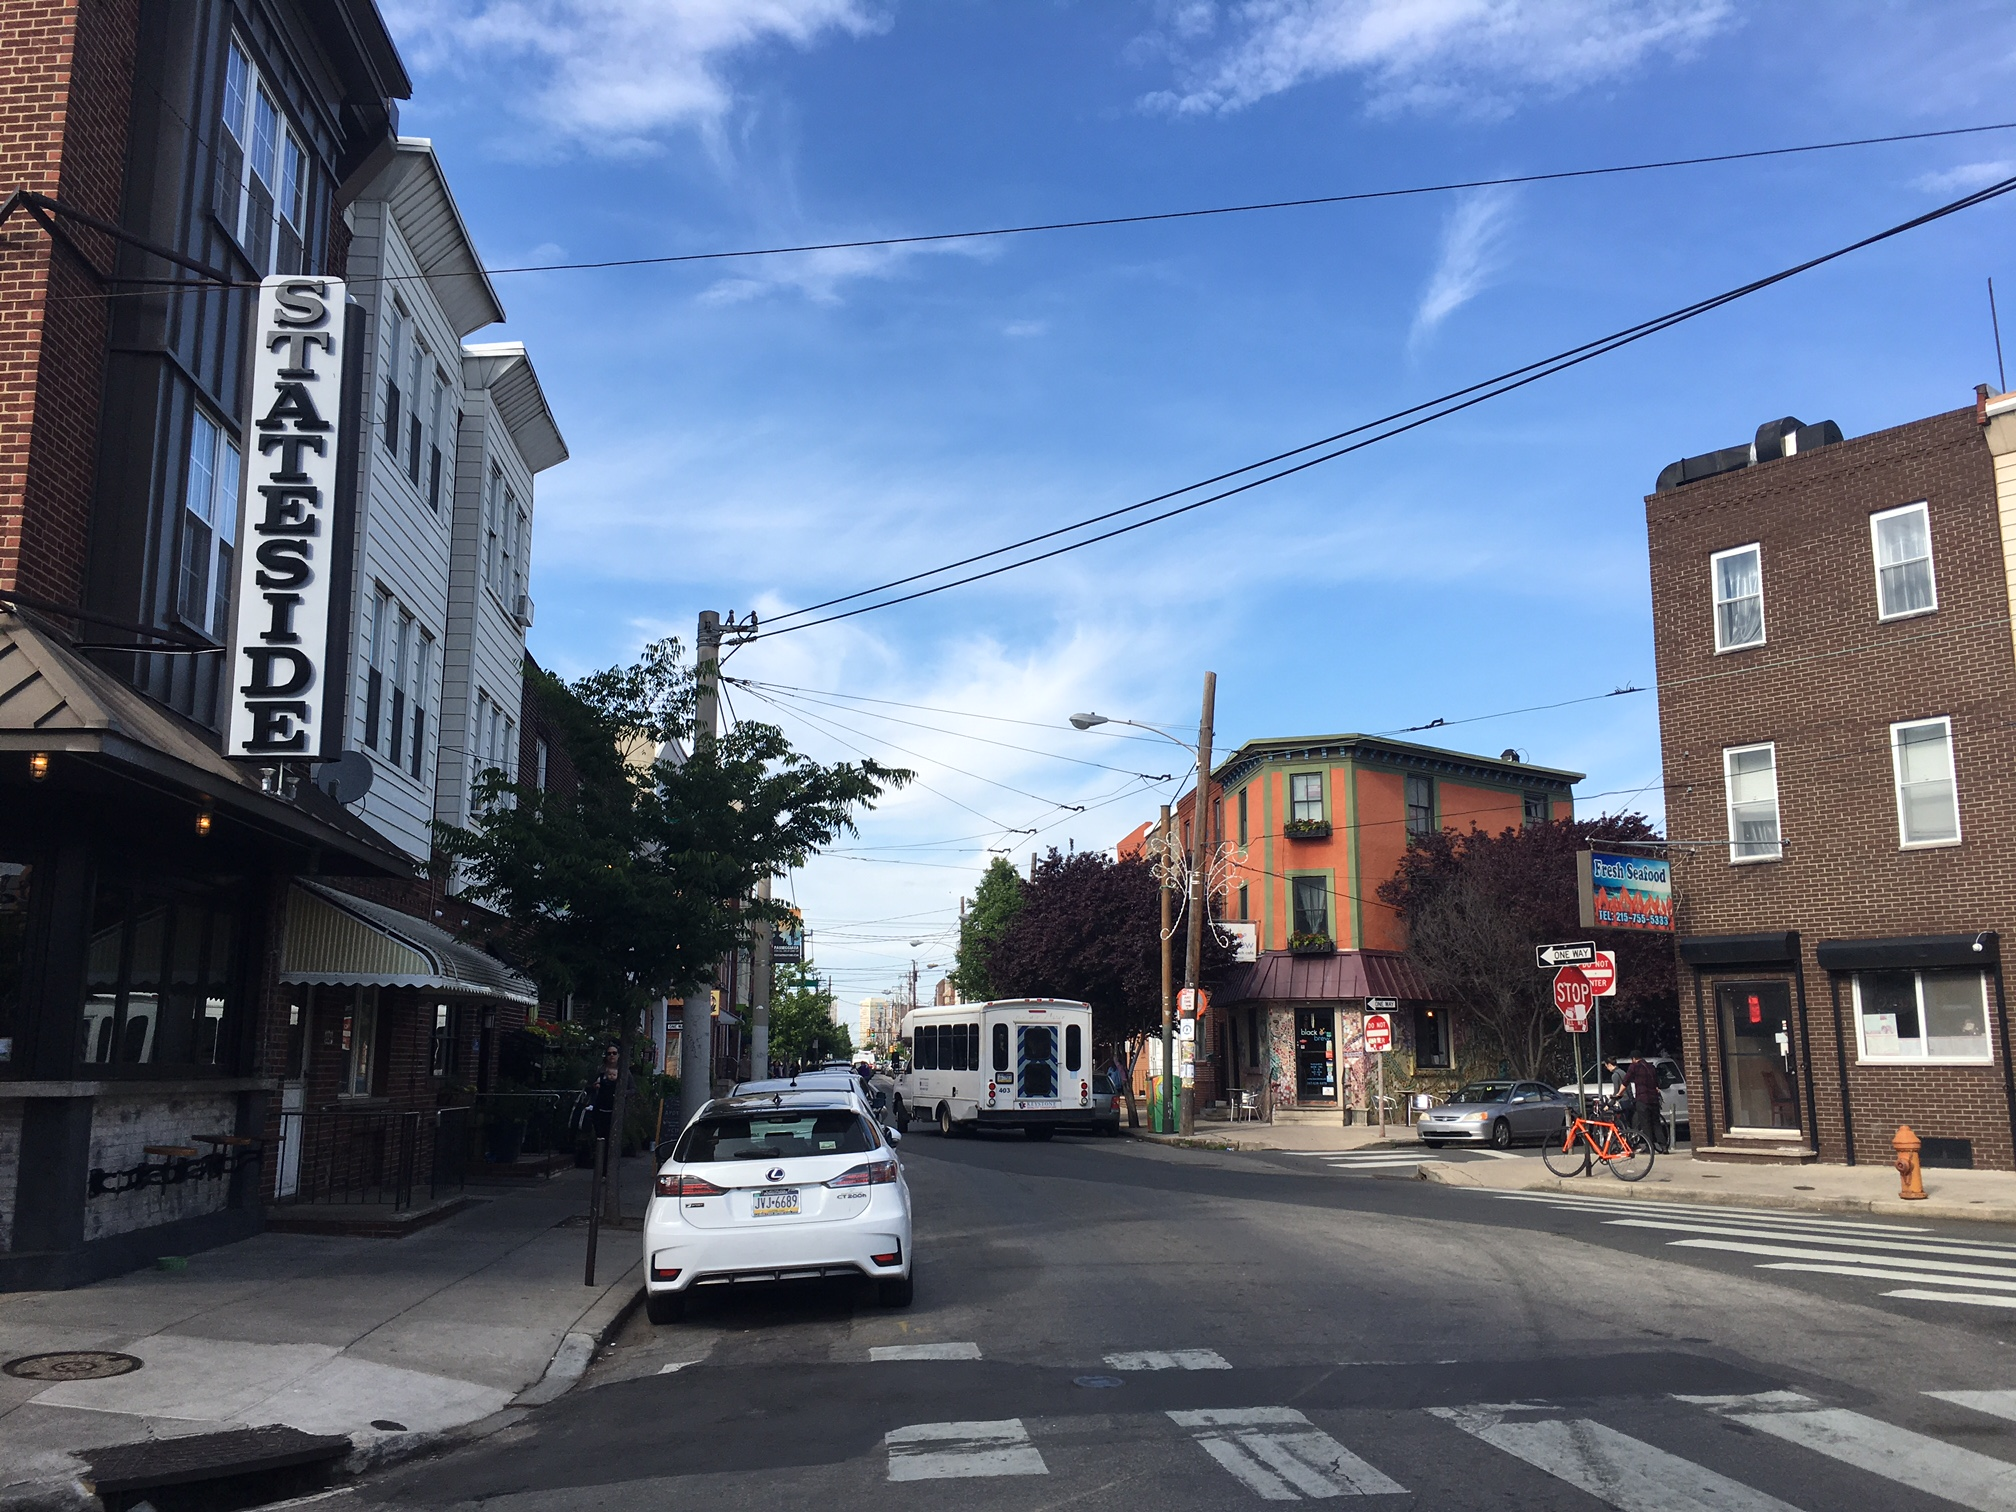 Buildings where Stateside and Black 'N Brew are located saw property tax assessments more than double for 2018. | Jared Brey for PlanPhilly